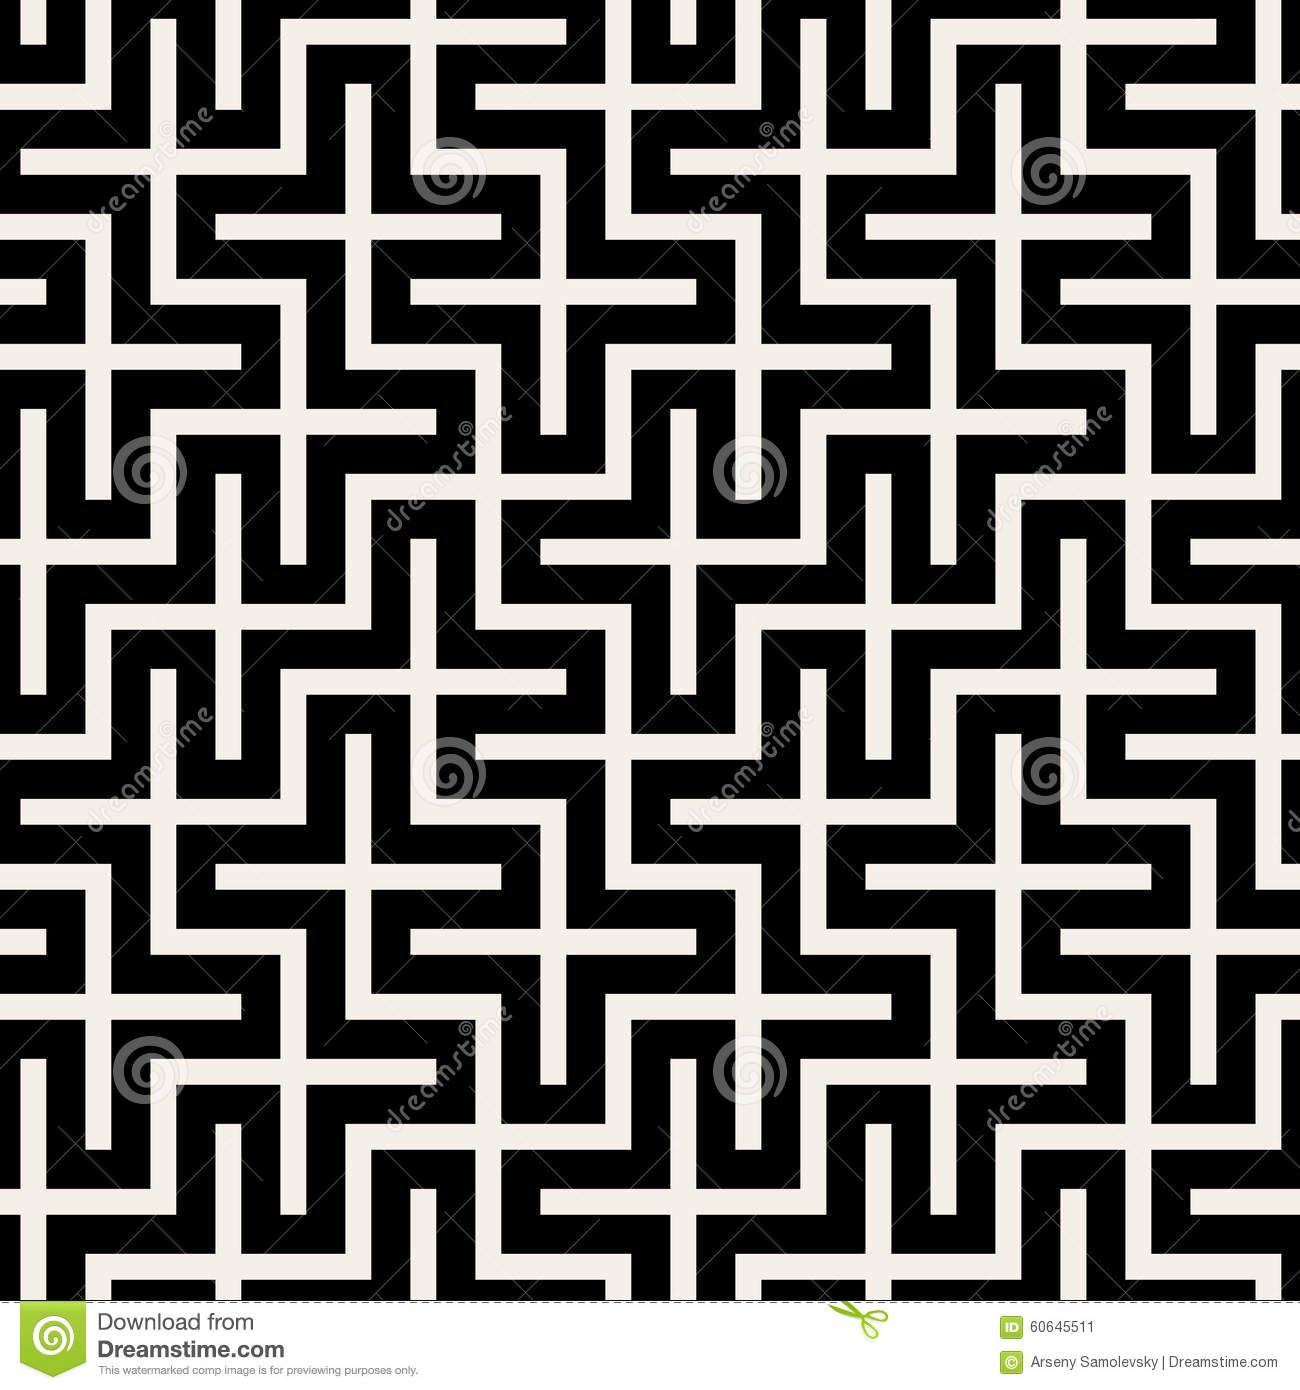 vector seamless black white square maze grid pattern background 60645511